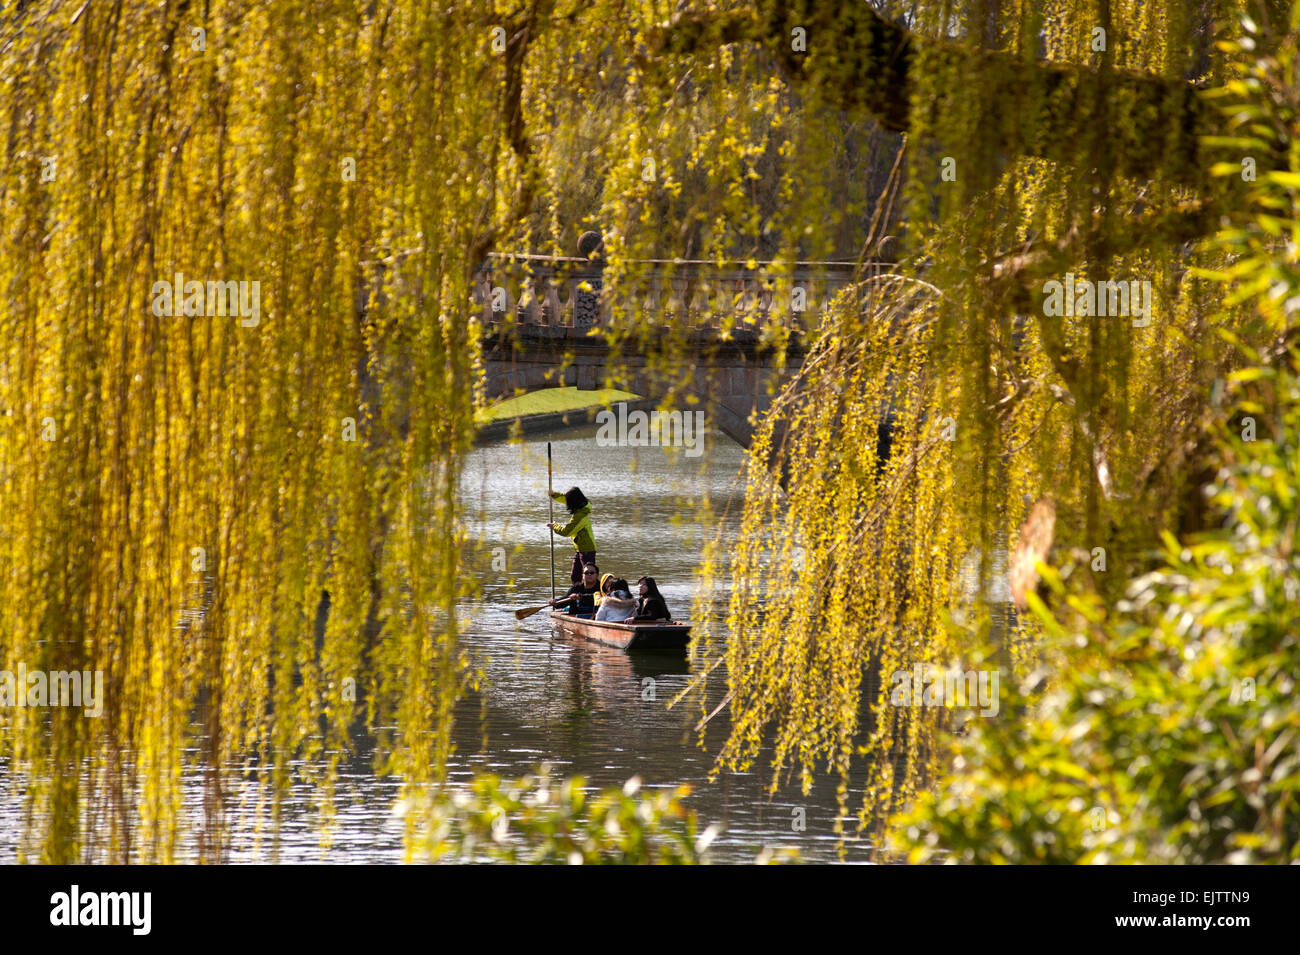 Cambridge, UK. 01st Apr, 2015. Punting through the Spring Willows on the River Cam in Cambridge, England,UK. 1st - Stock Image